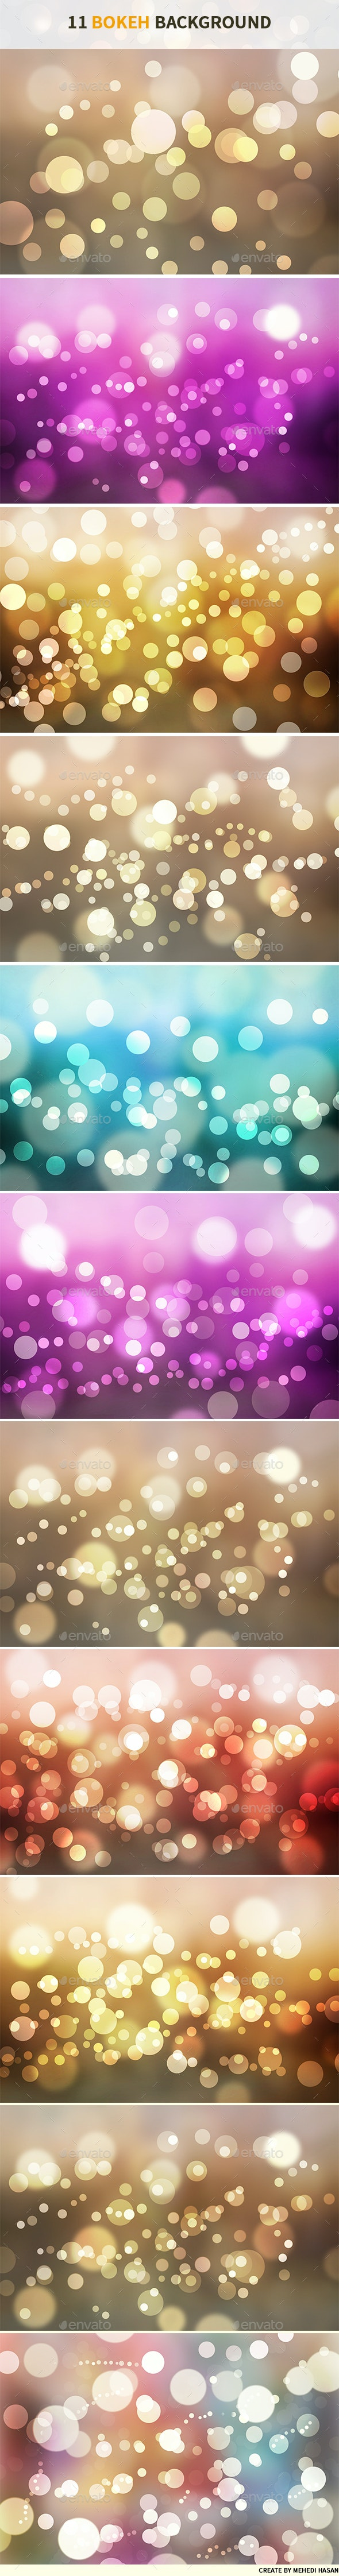 11 Bokeh Backgrounds - Abstract Backgrounds